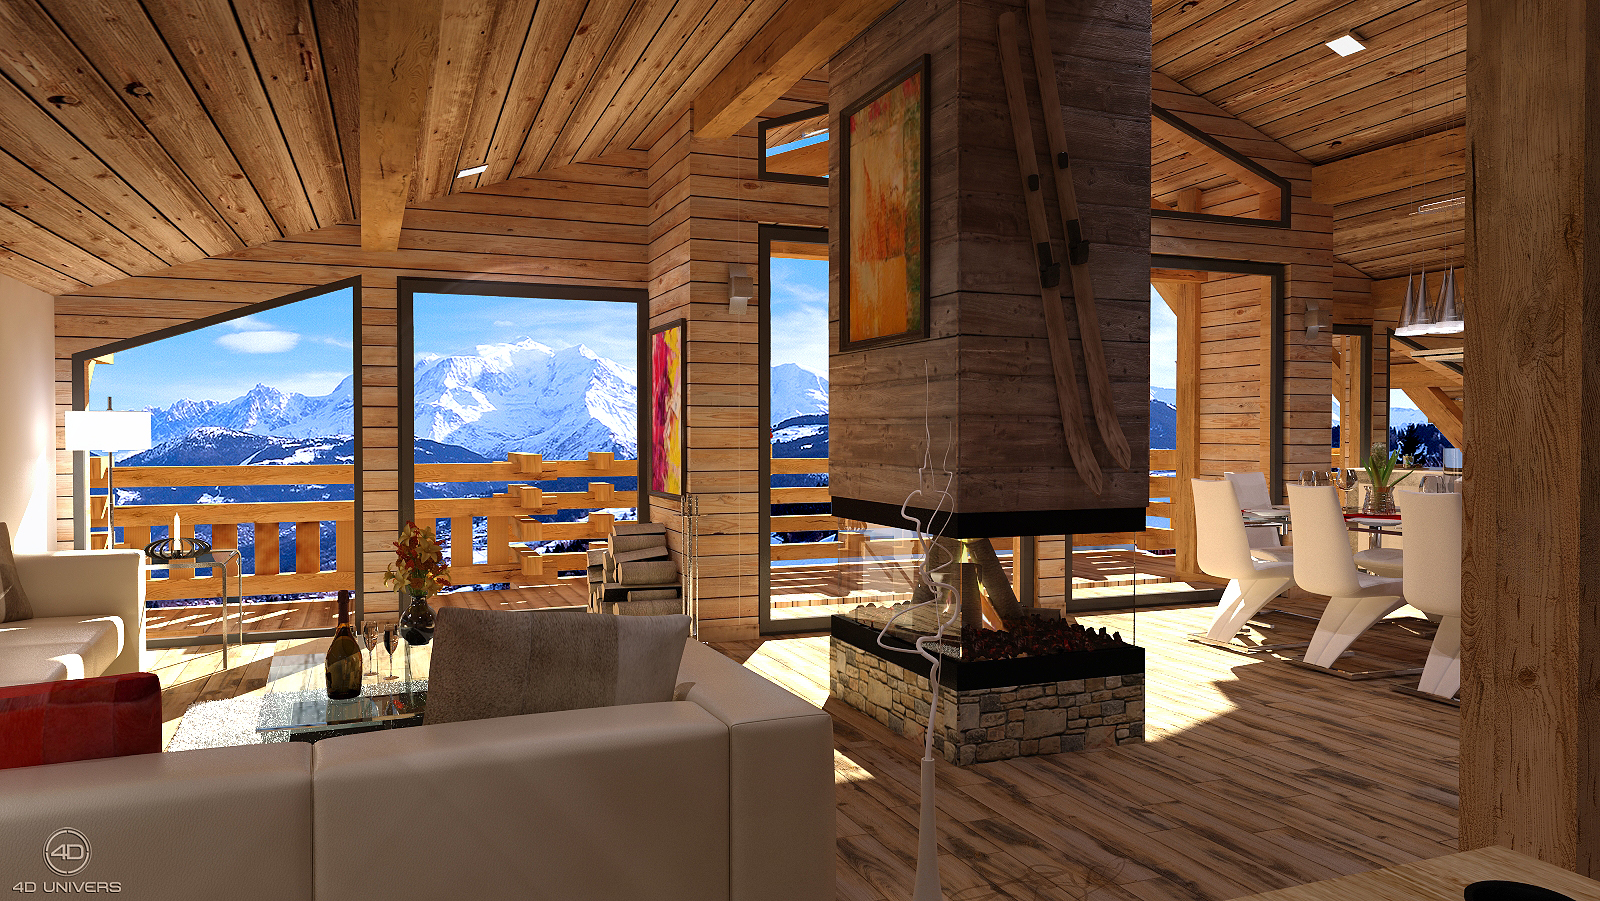 programme immobilier 3d le hameau des seugets 4 chalets hm finance 4d univers studio. Black Bedroom Furniture Sets. Home Design Ideas